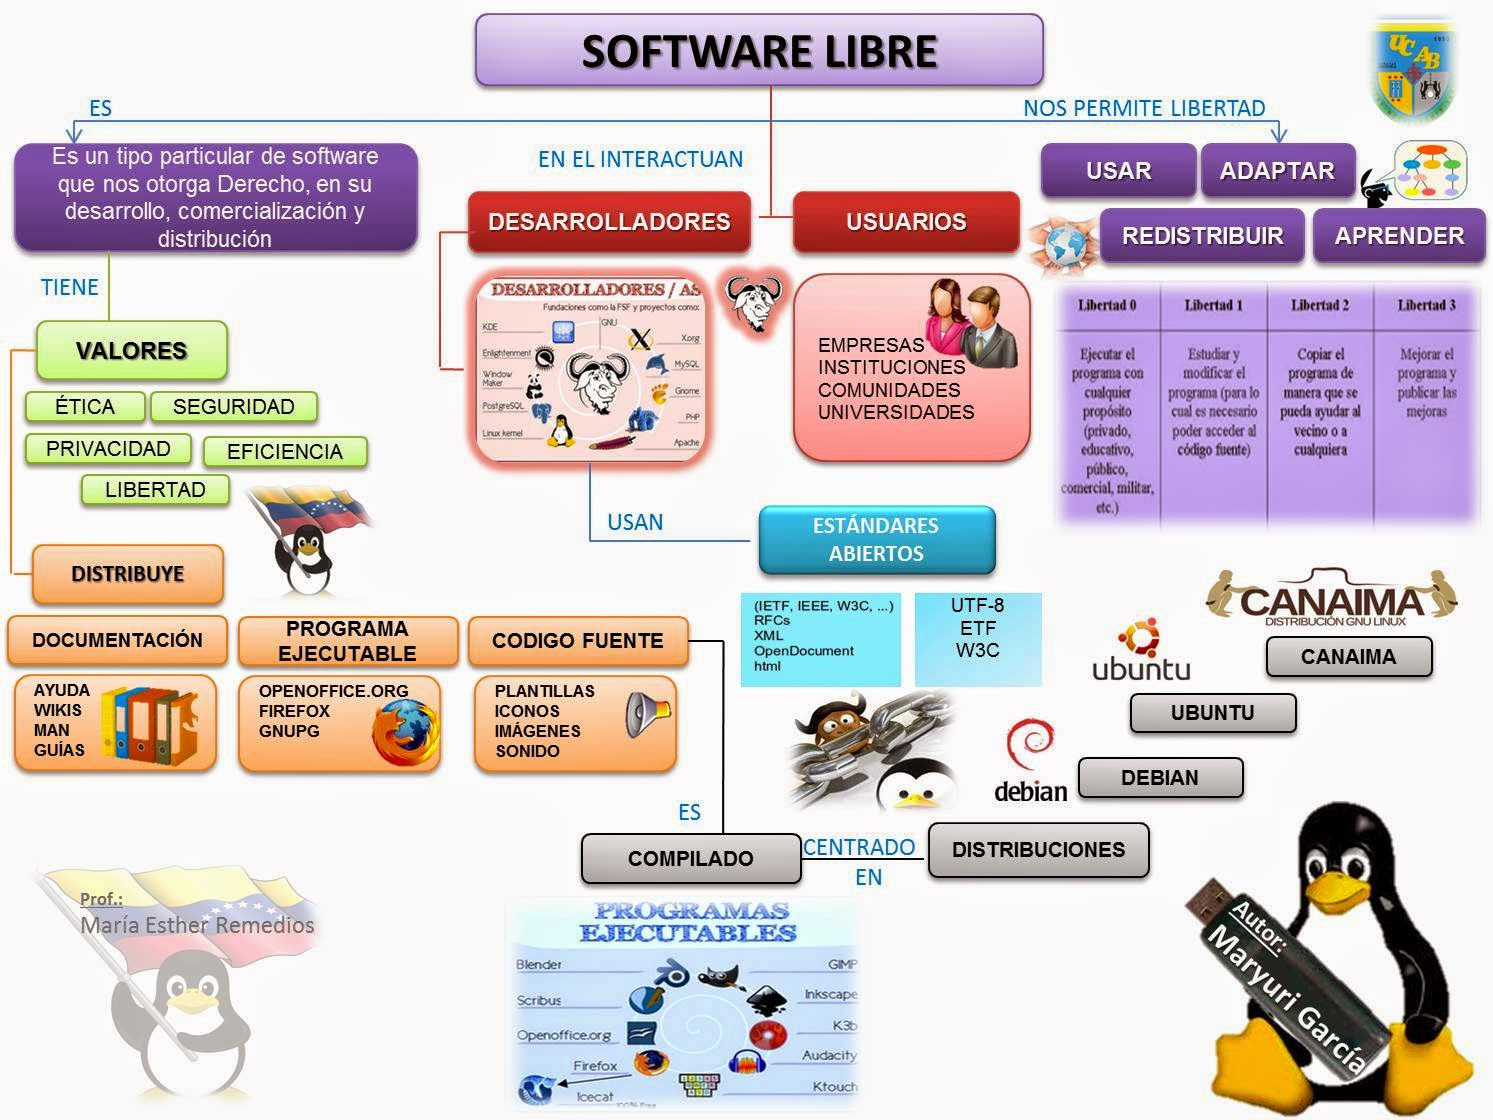 Licencias De Software Libre Avance Software Libre Venezuela Filecloudvino